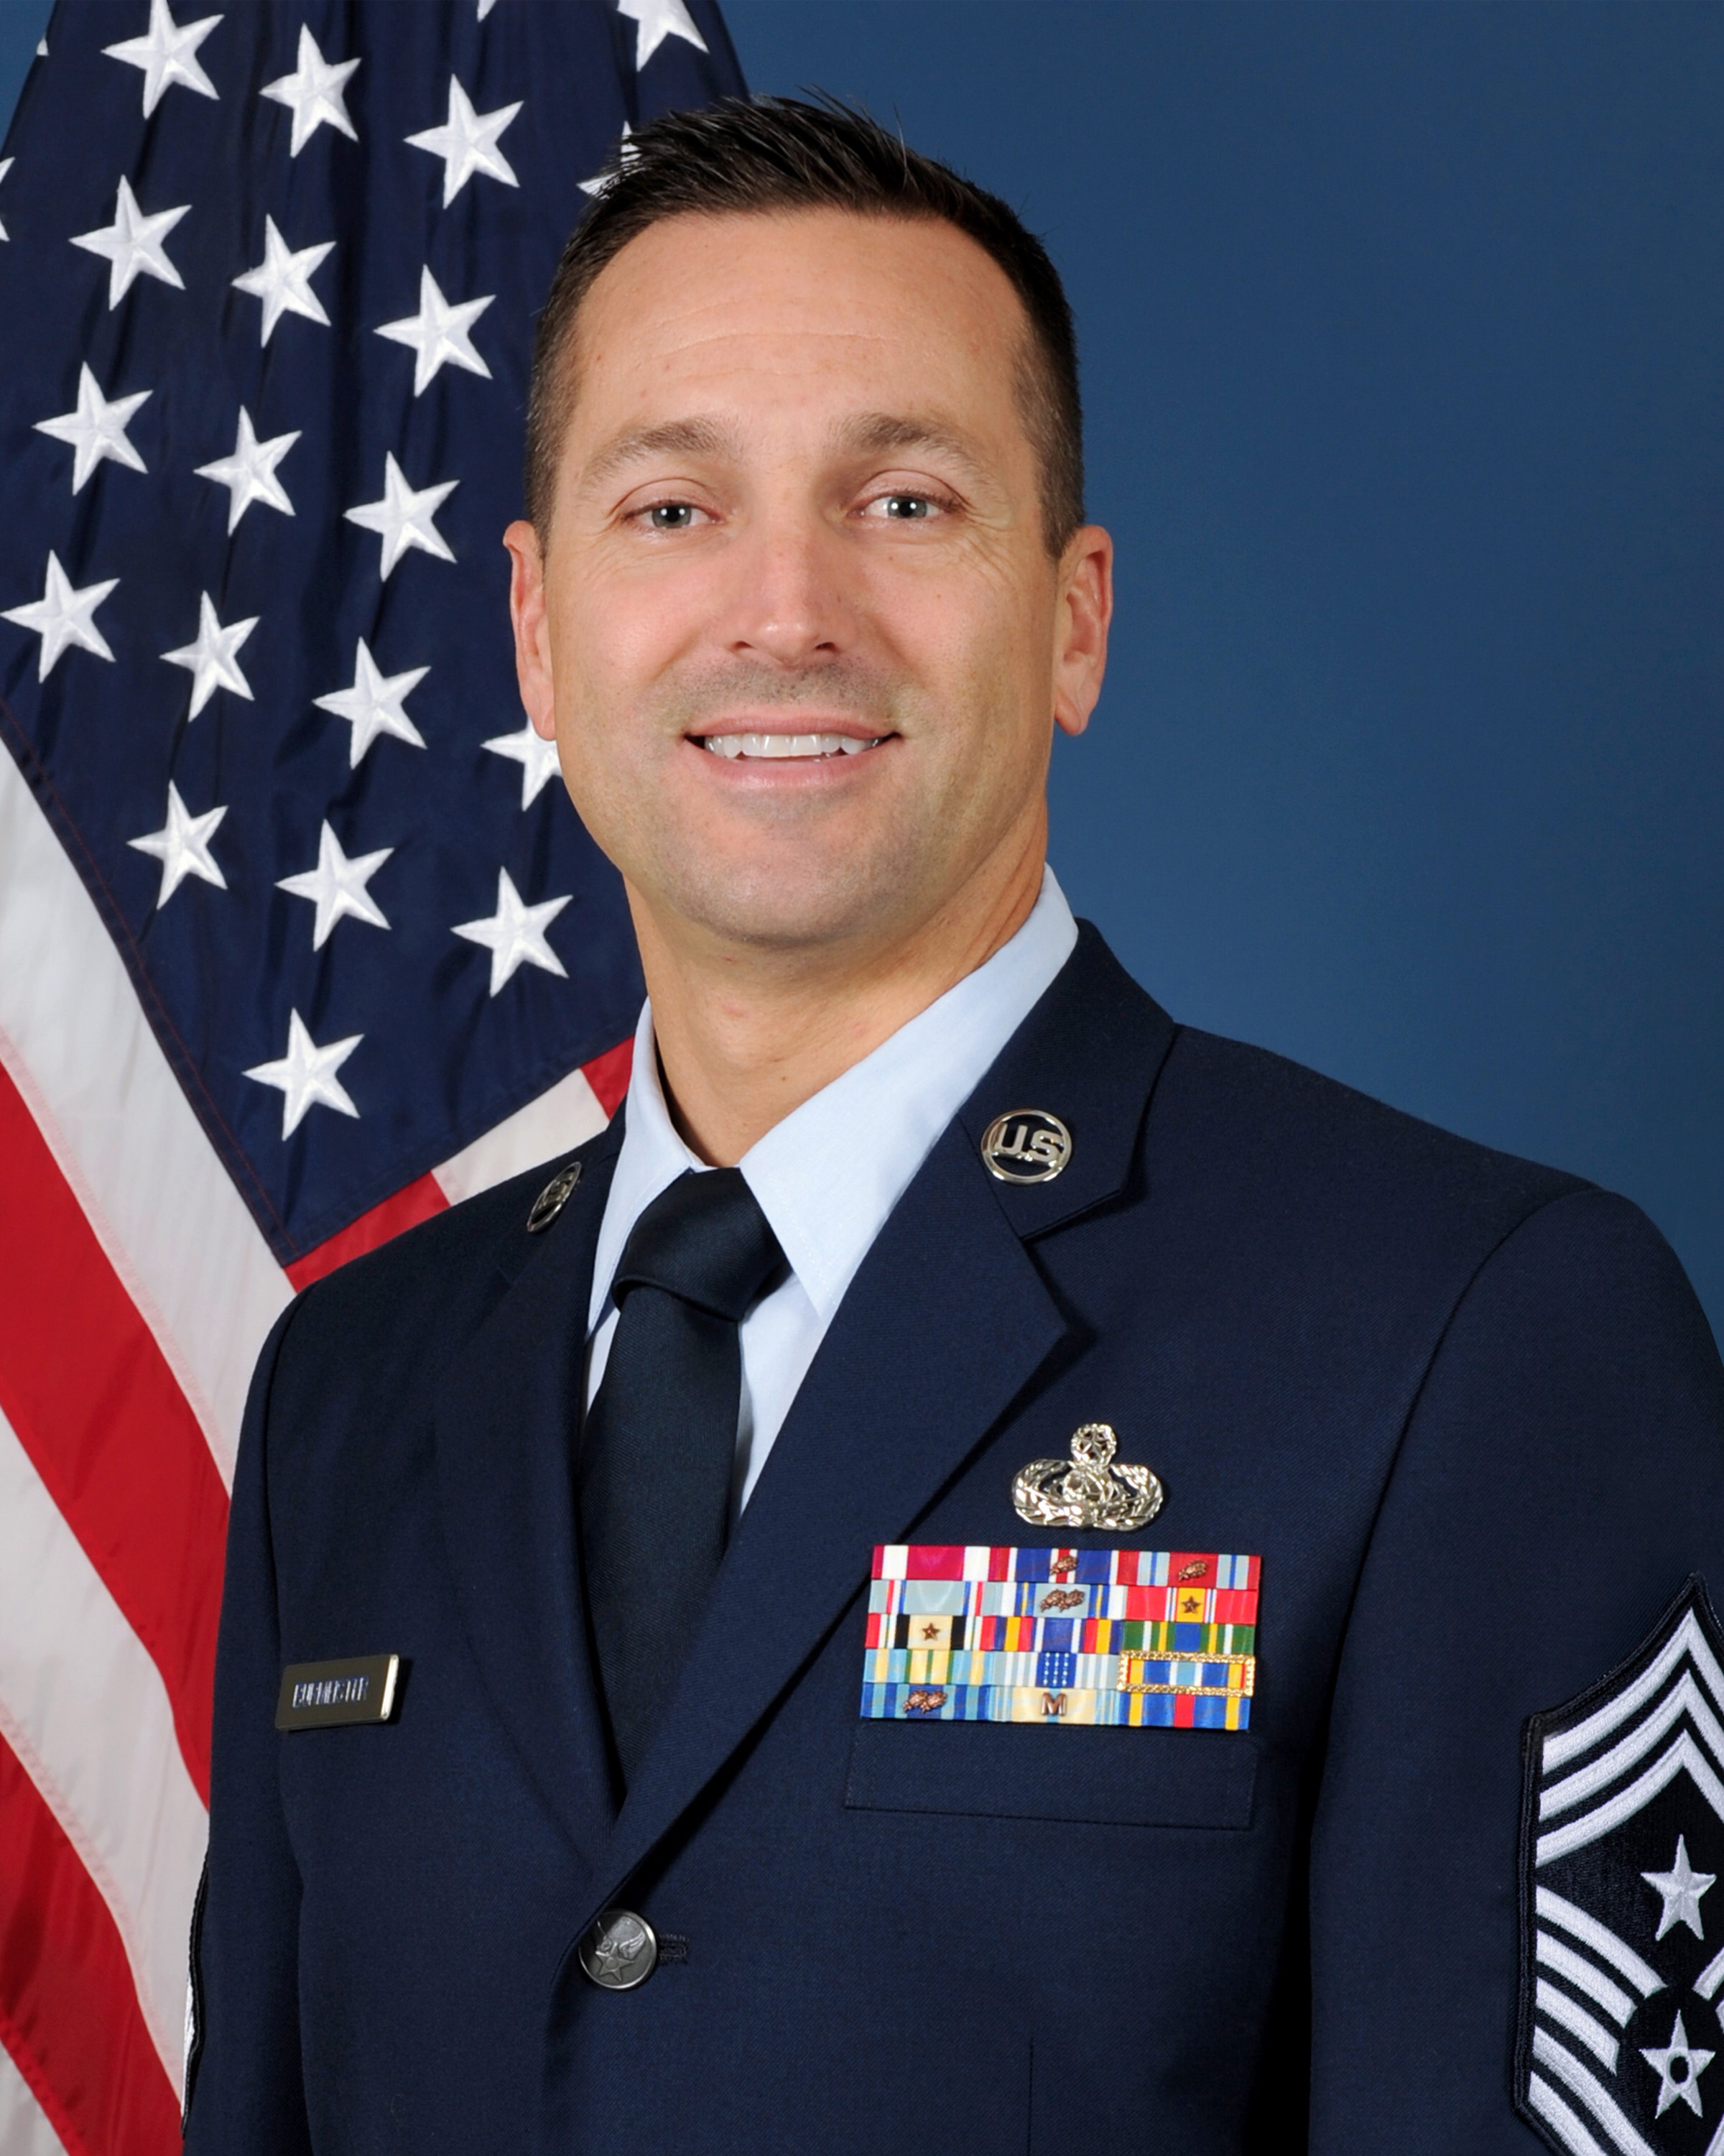 349 AMW Command Chief Master Sgt. jimmy Burmeister